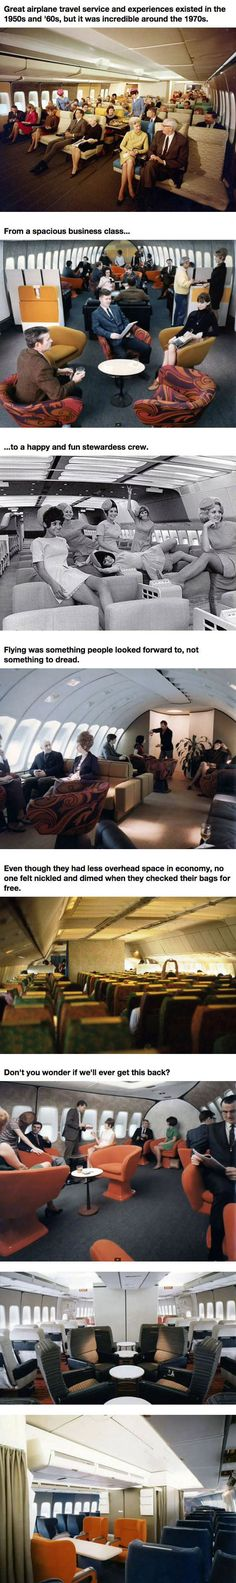 Airplane Travel In The 1970s